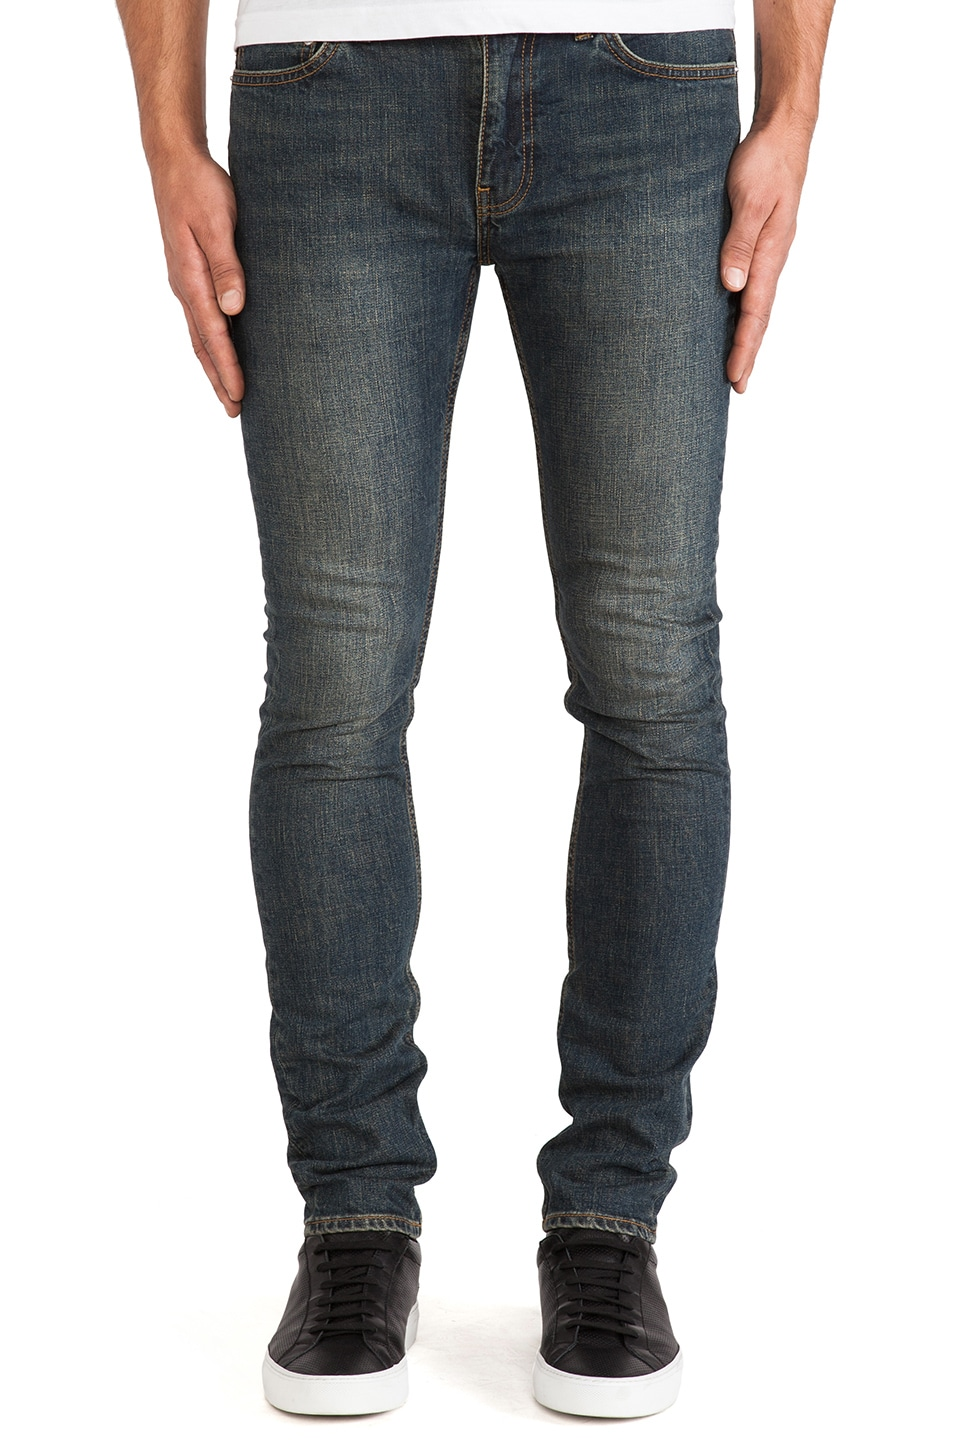 BLK DNM Jeans 25 in Hunts Blue